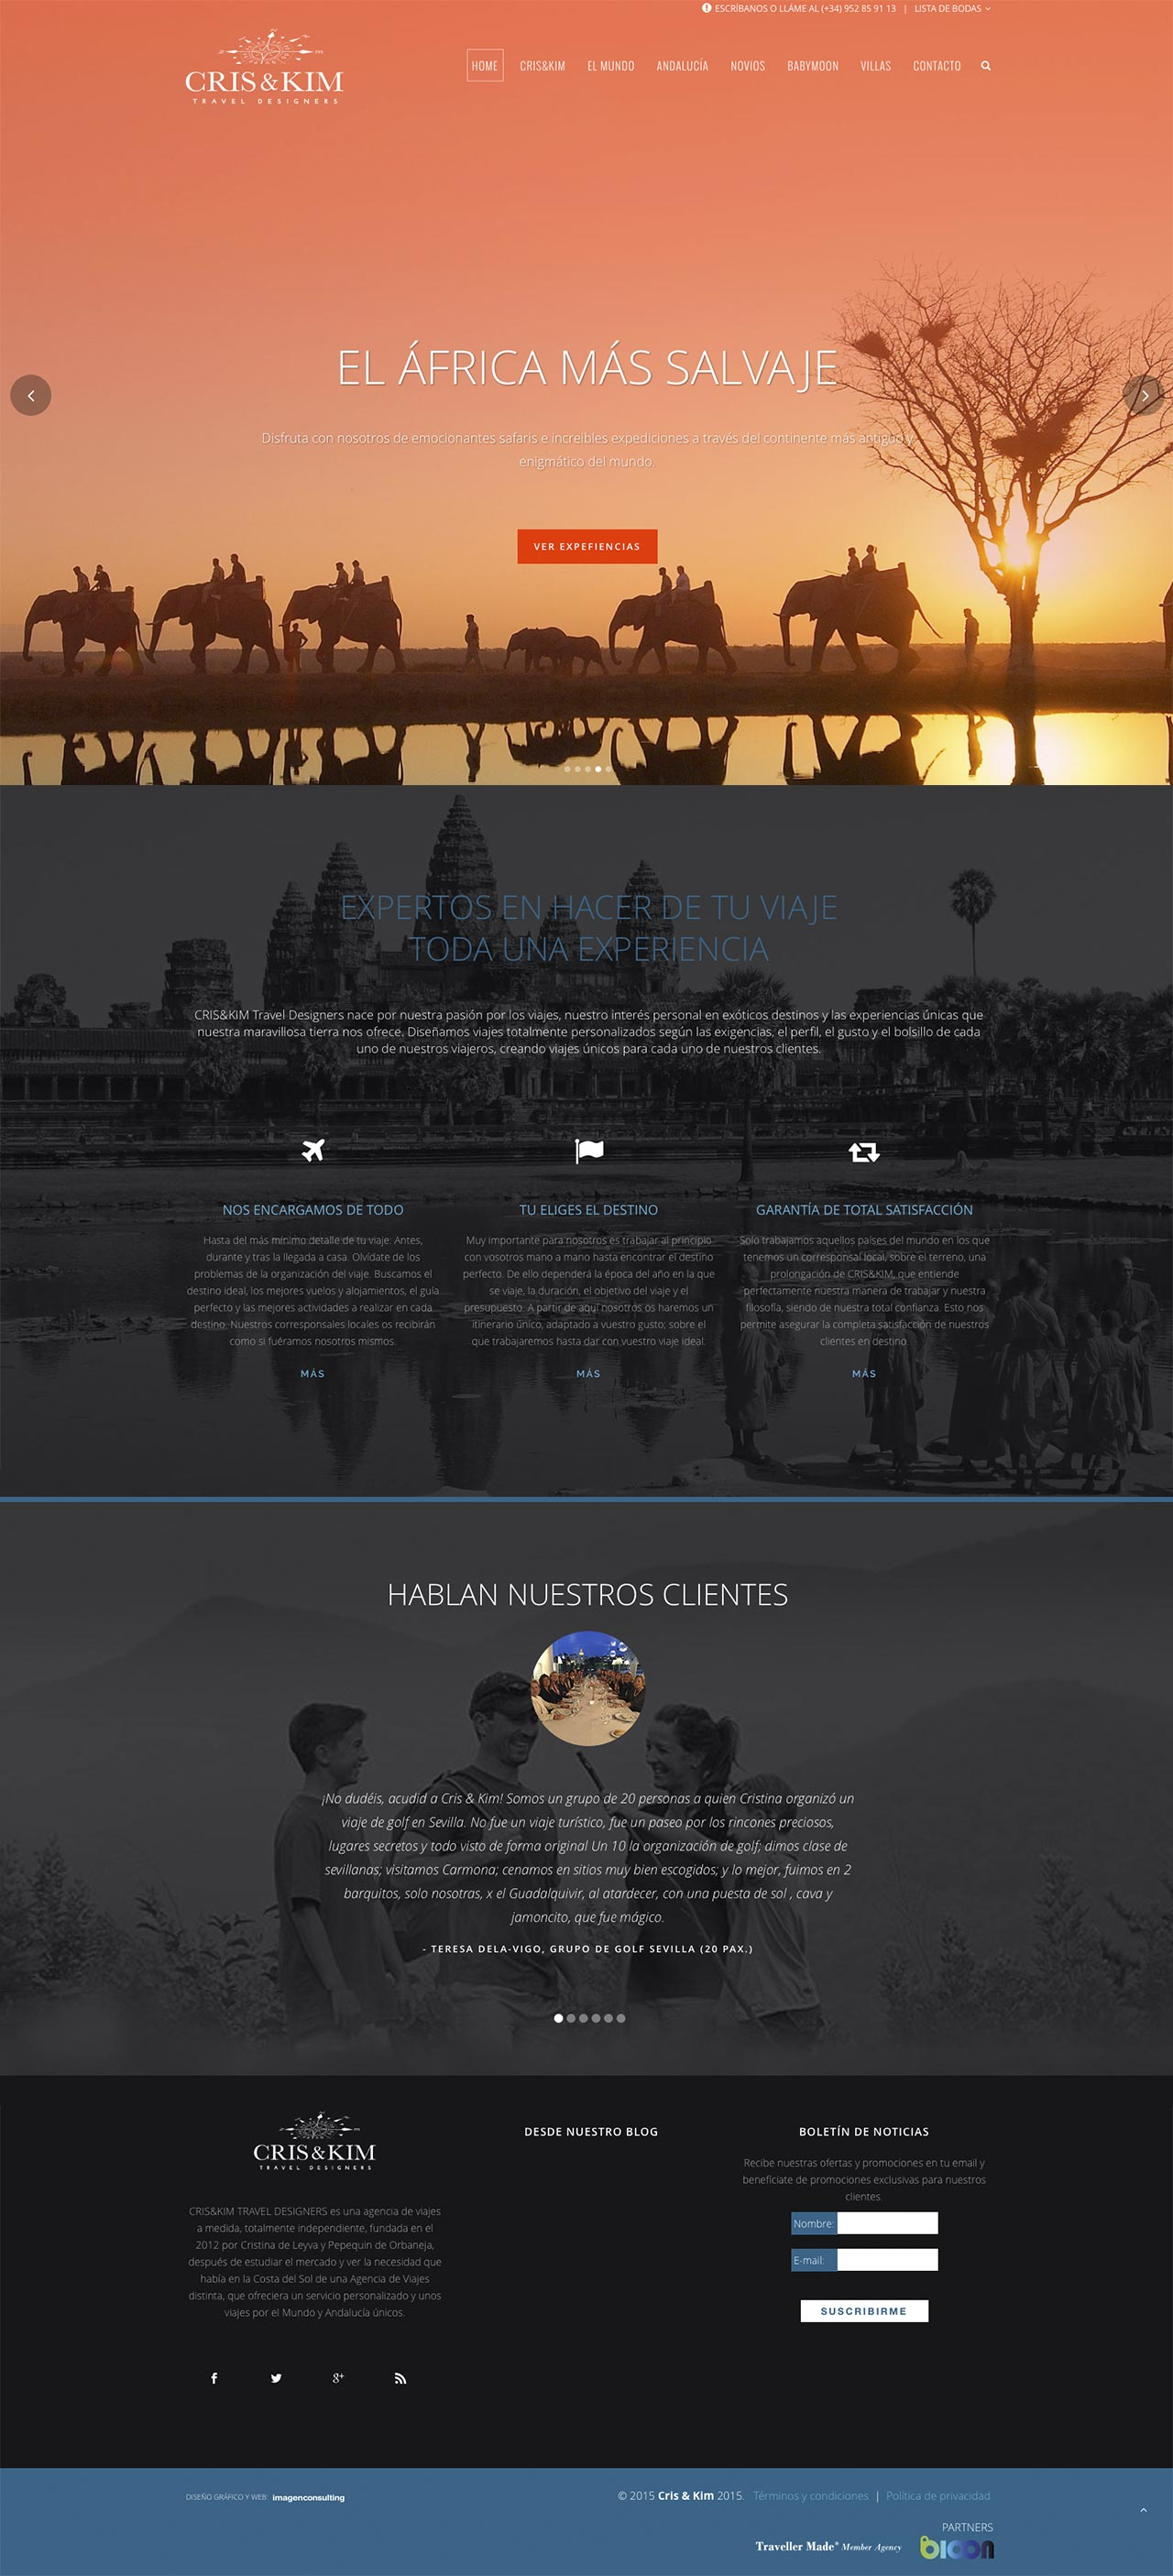 Web design for Cris&Kim Travel Designers